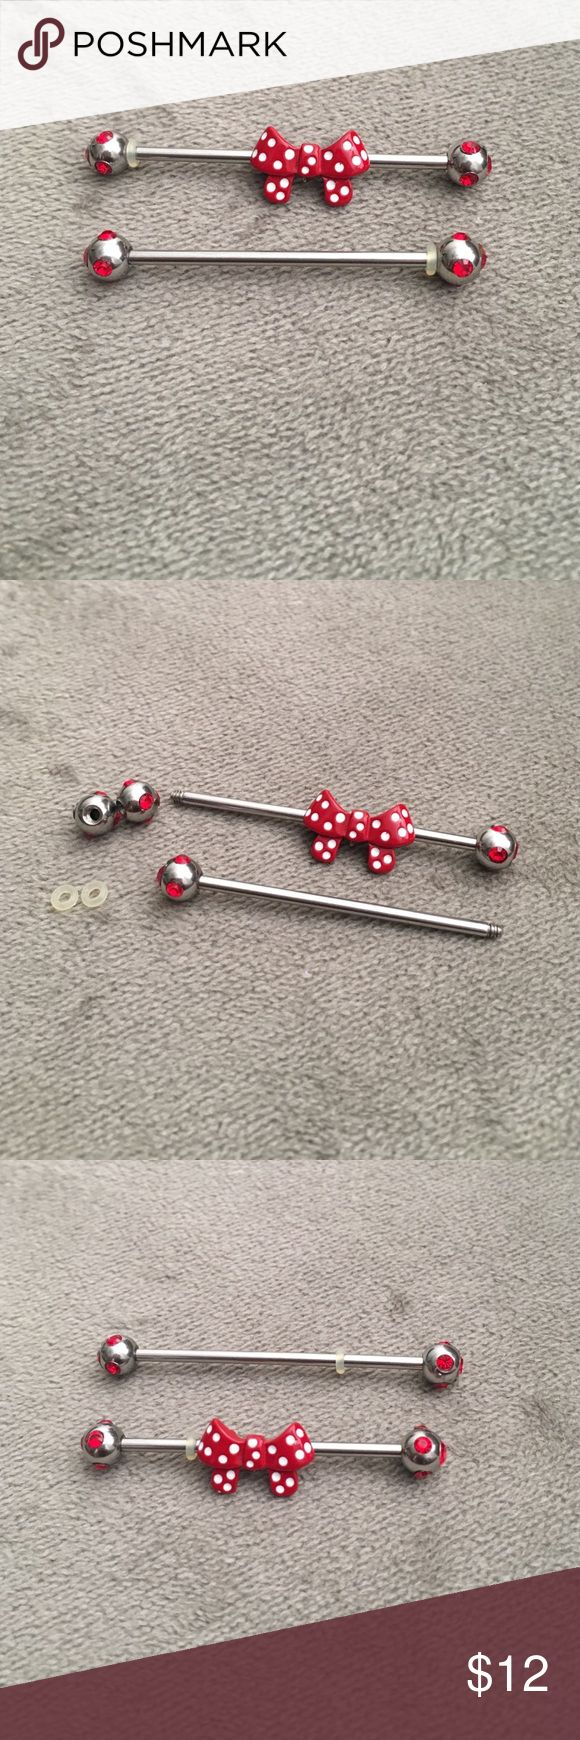 Red poka dot bow industrial piercing jewelry Cute industrial jewelry, 2 different size barbells removable bow and little red ball, never worn because I never got the ear piercing done Jewelry Earrings